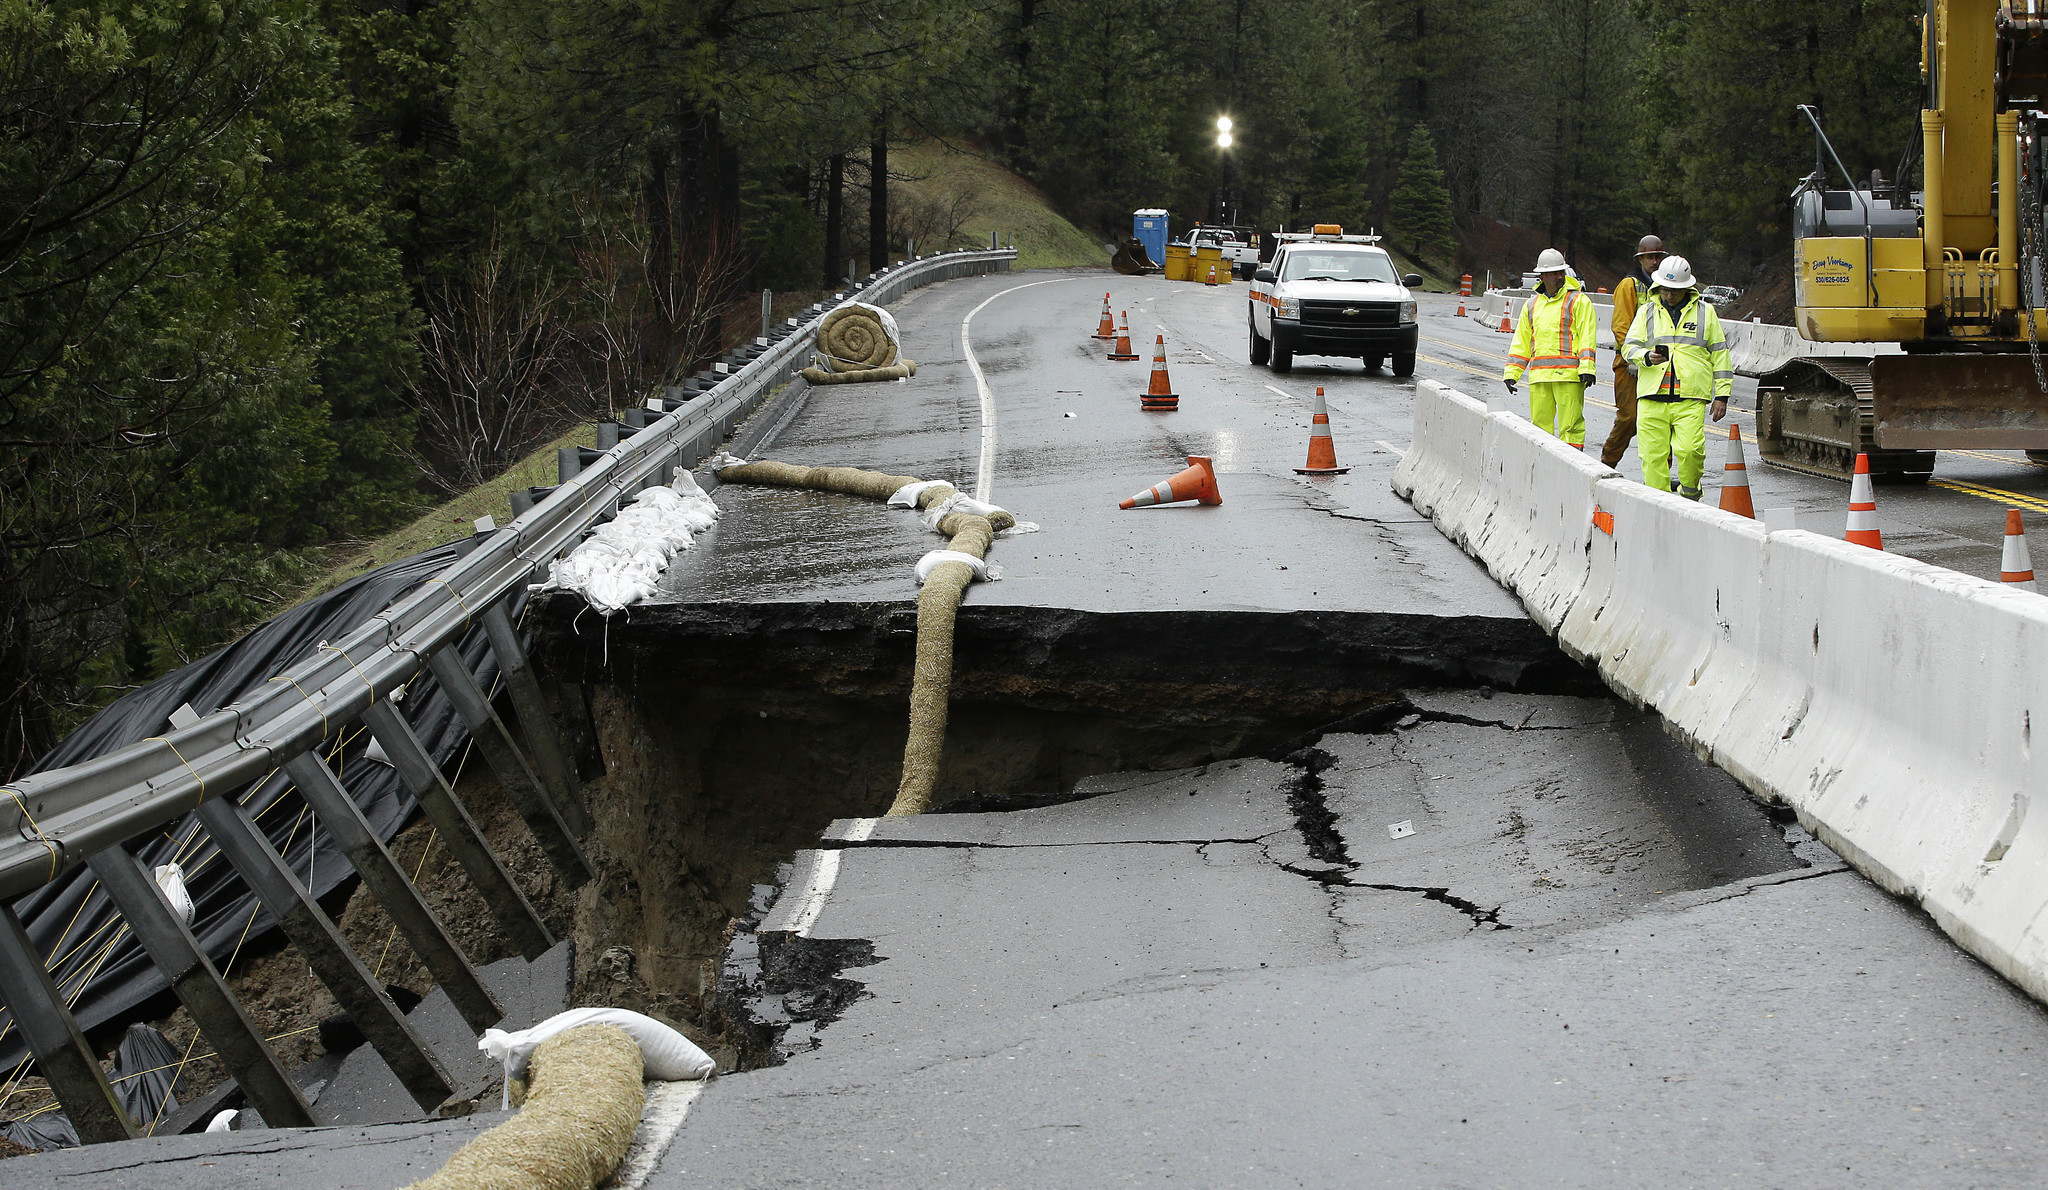 Heavy storms caused parts of the shoulder and one lane of westbound Highway 50 to give way in February near Pollock Pines. (Rich Pedroncelli / AP)